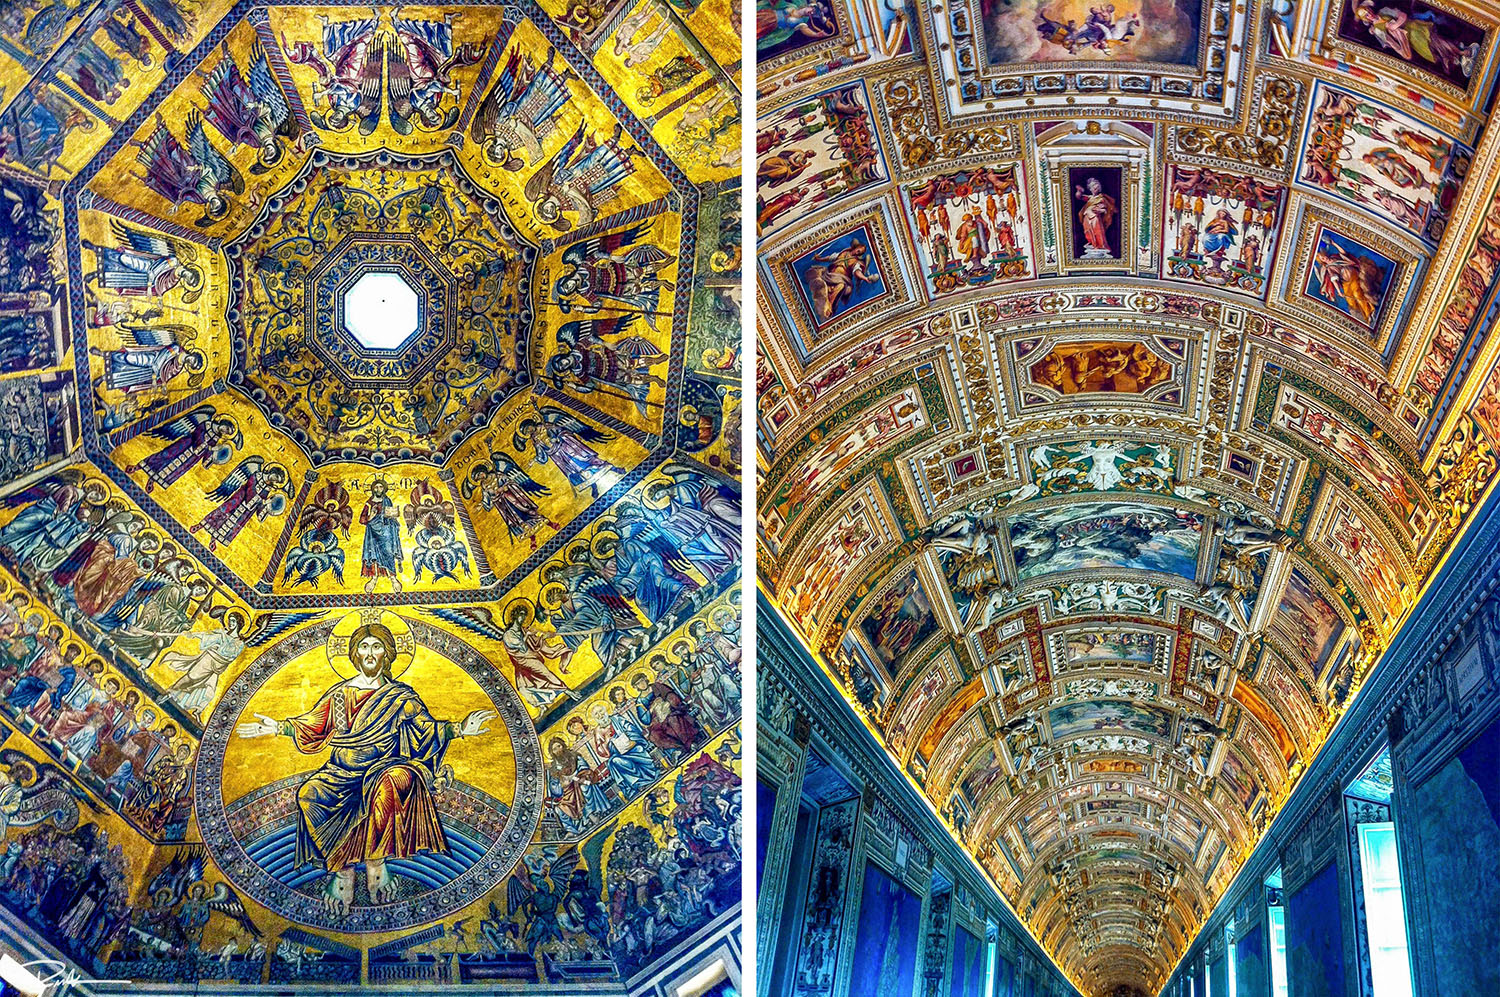 florence battistero and vatican museum ceilings